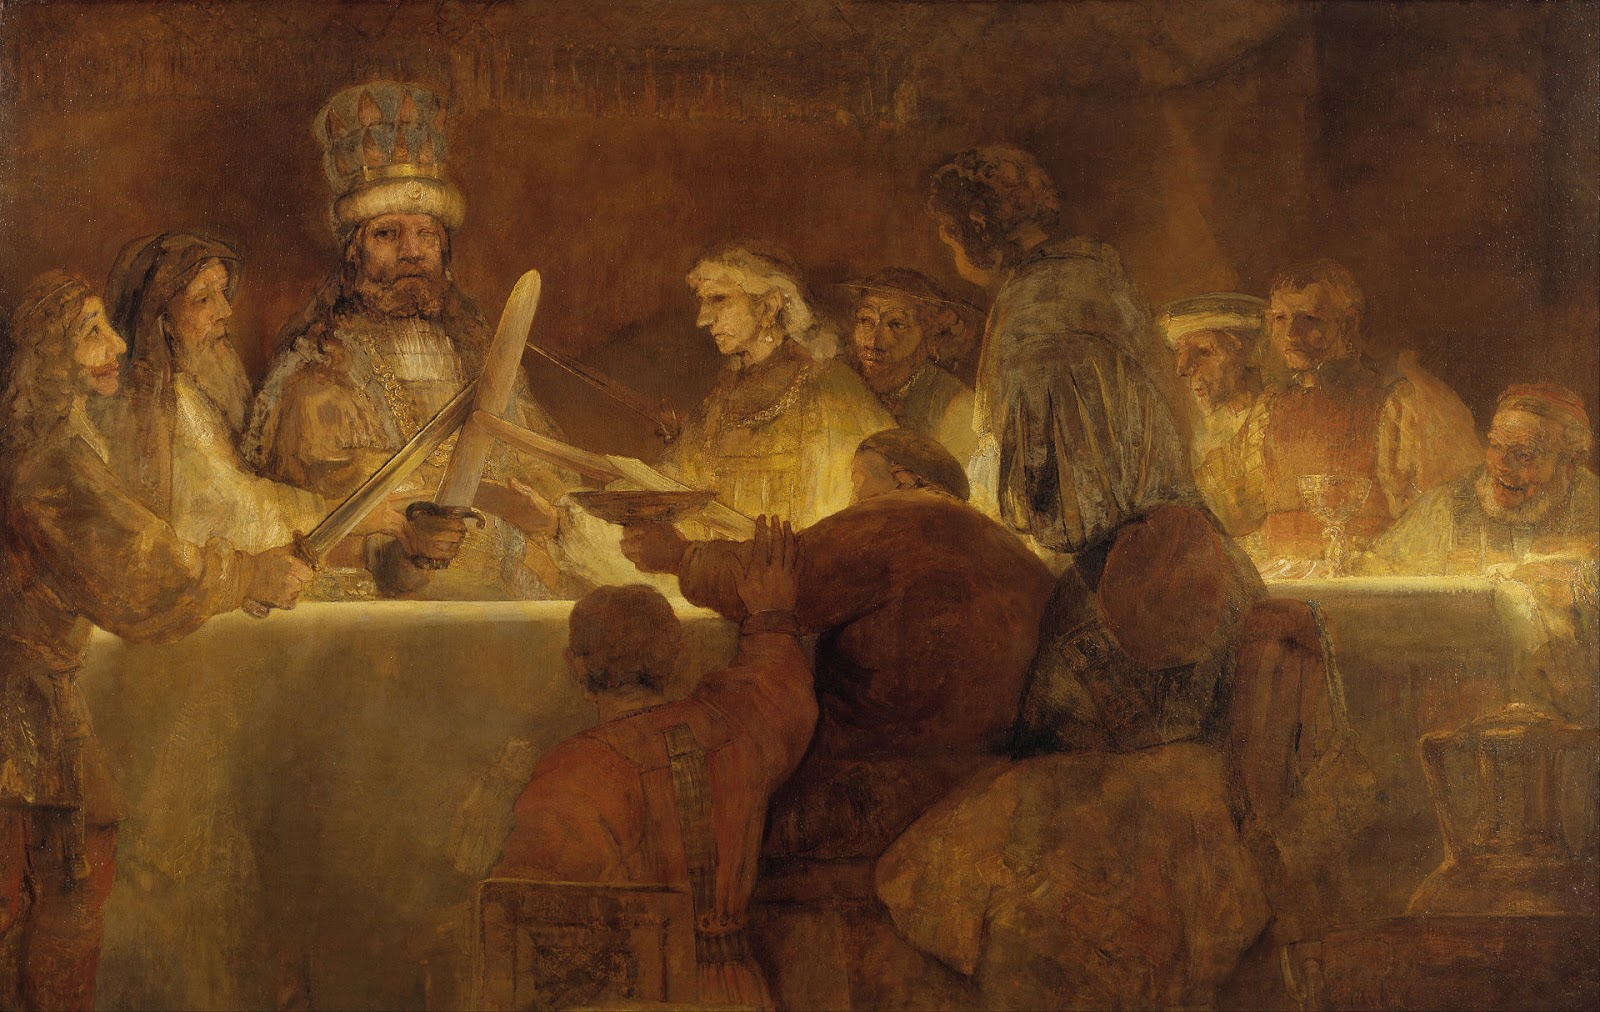 The Conspiracy of Claudius Civilis,  By Rembrandt - Rembrandt, Public Domain,  https://commons.wikimedia.org/w/index.php?curid=4136170